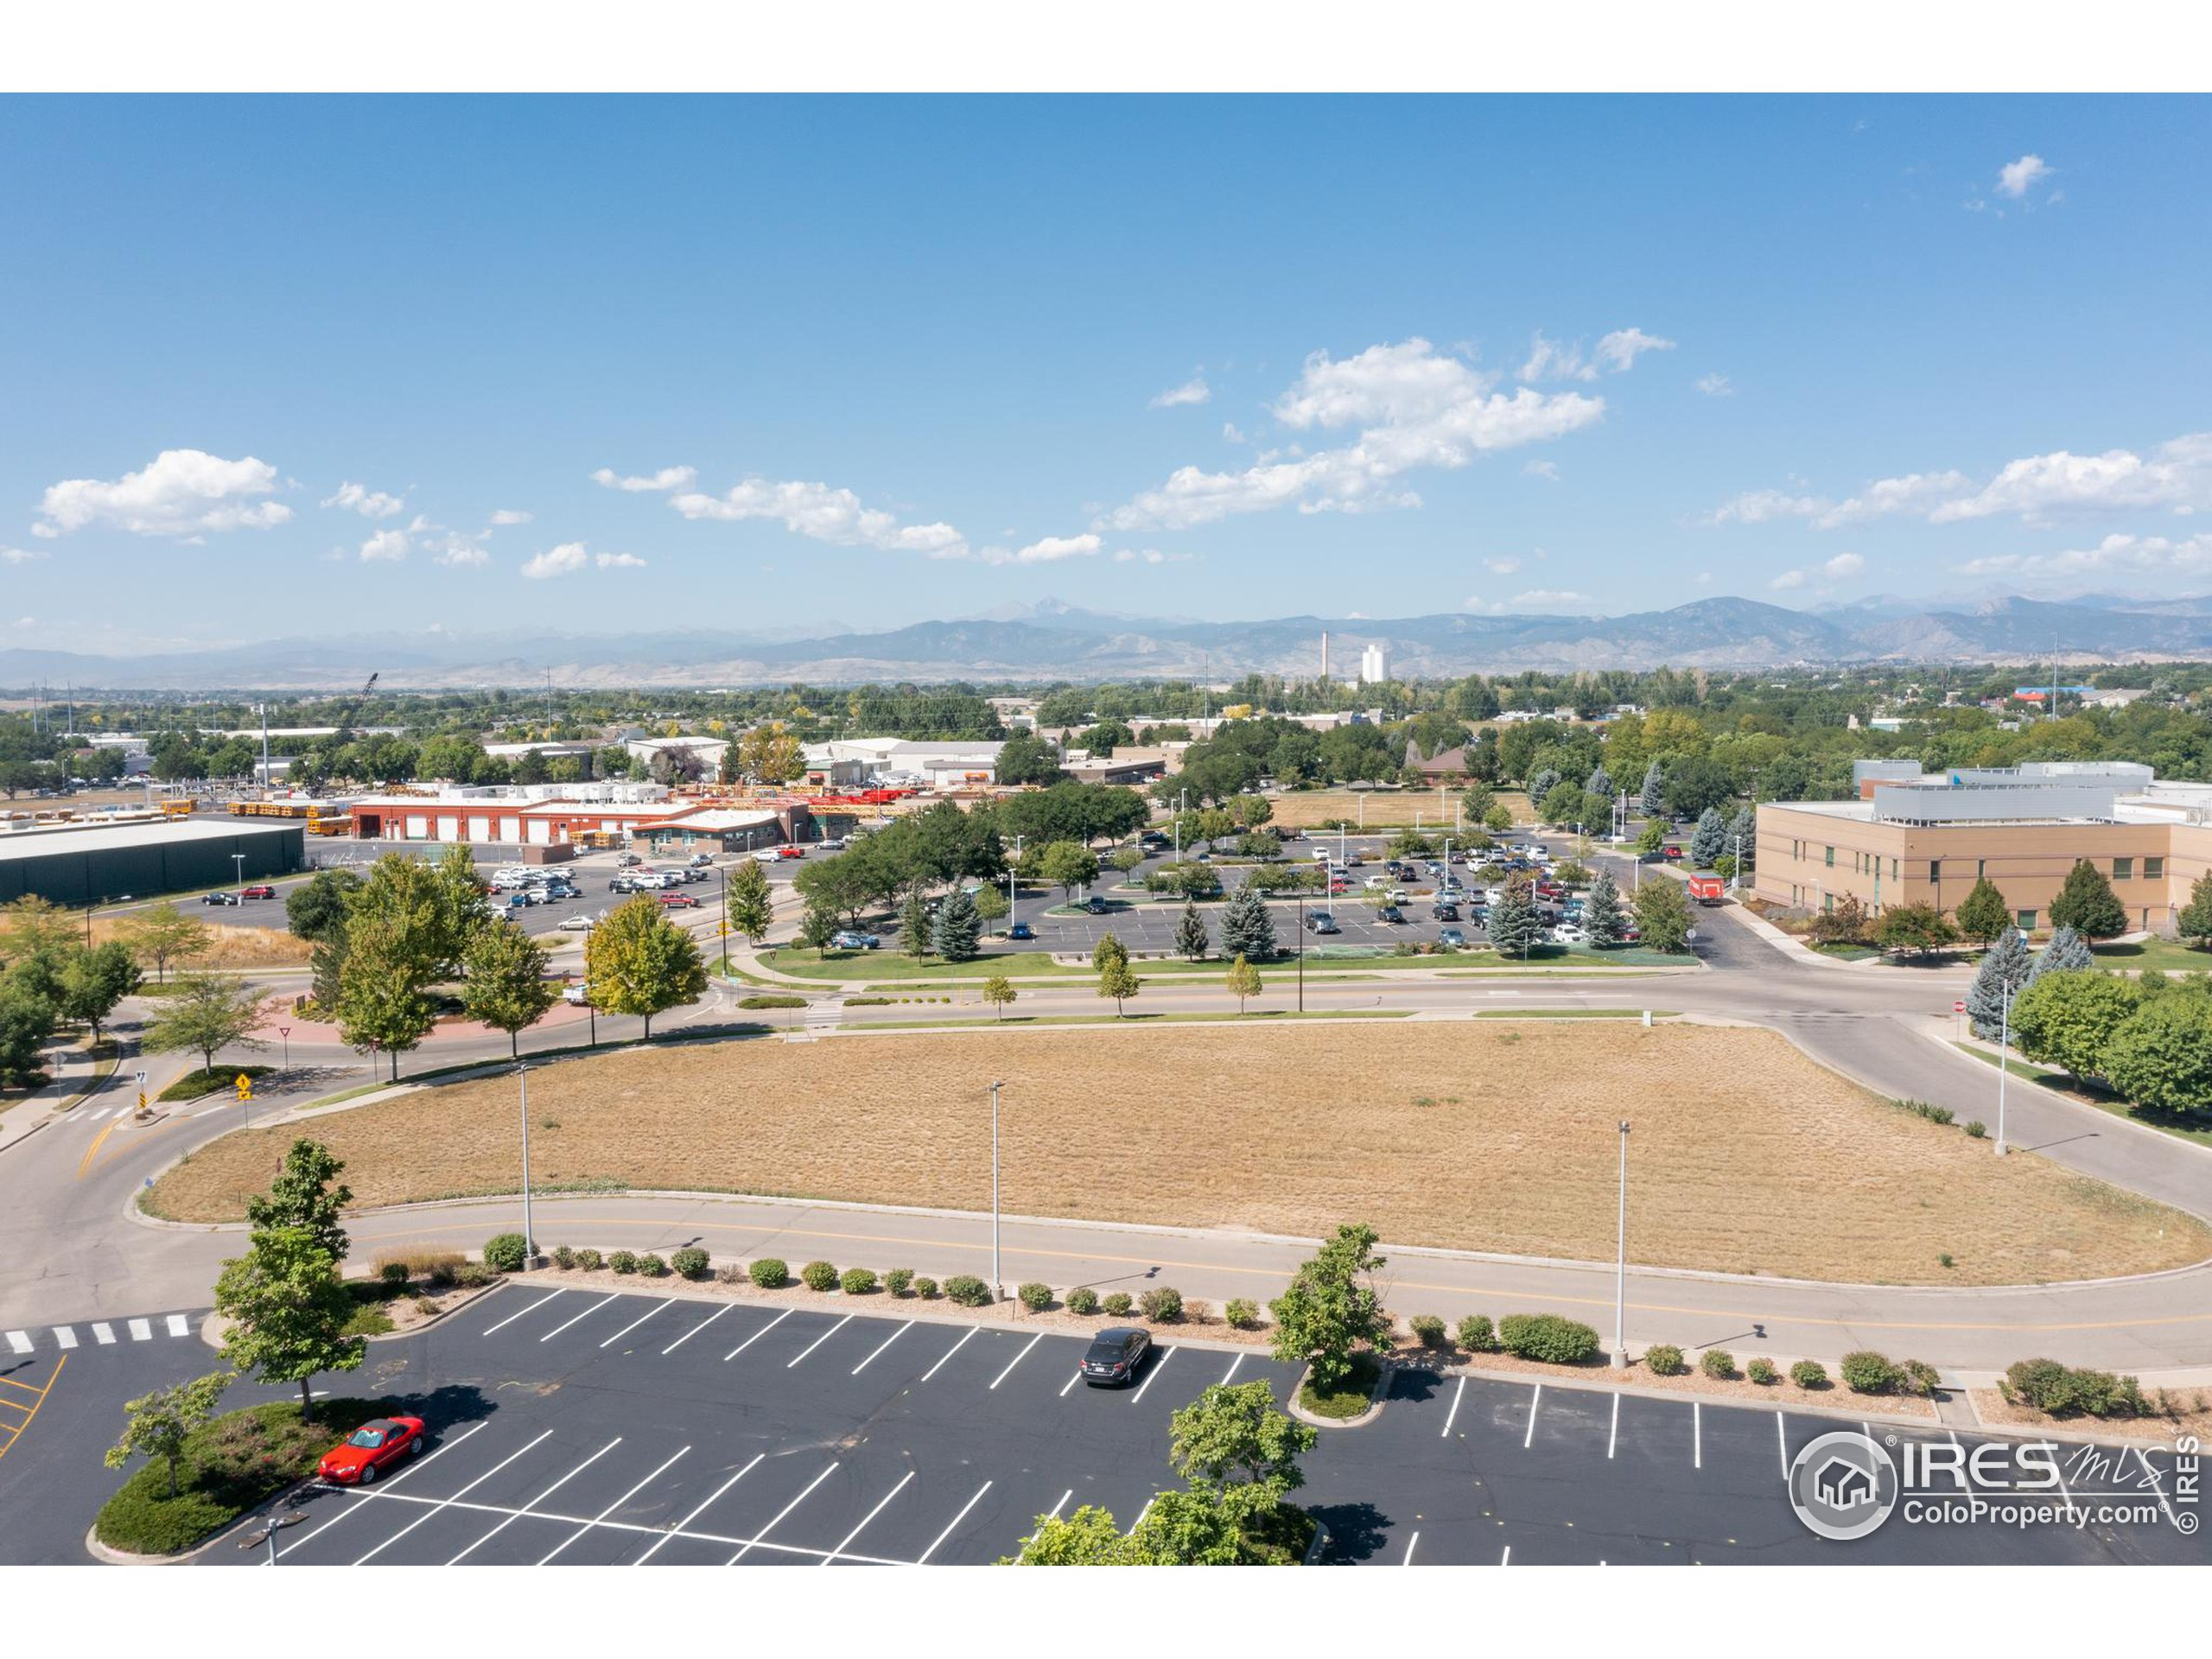 1.31 Acres. 100% ready for your project.